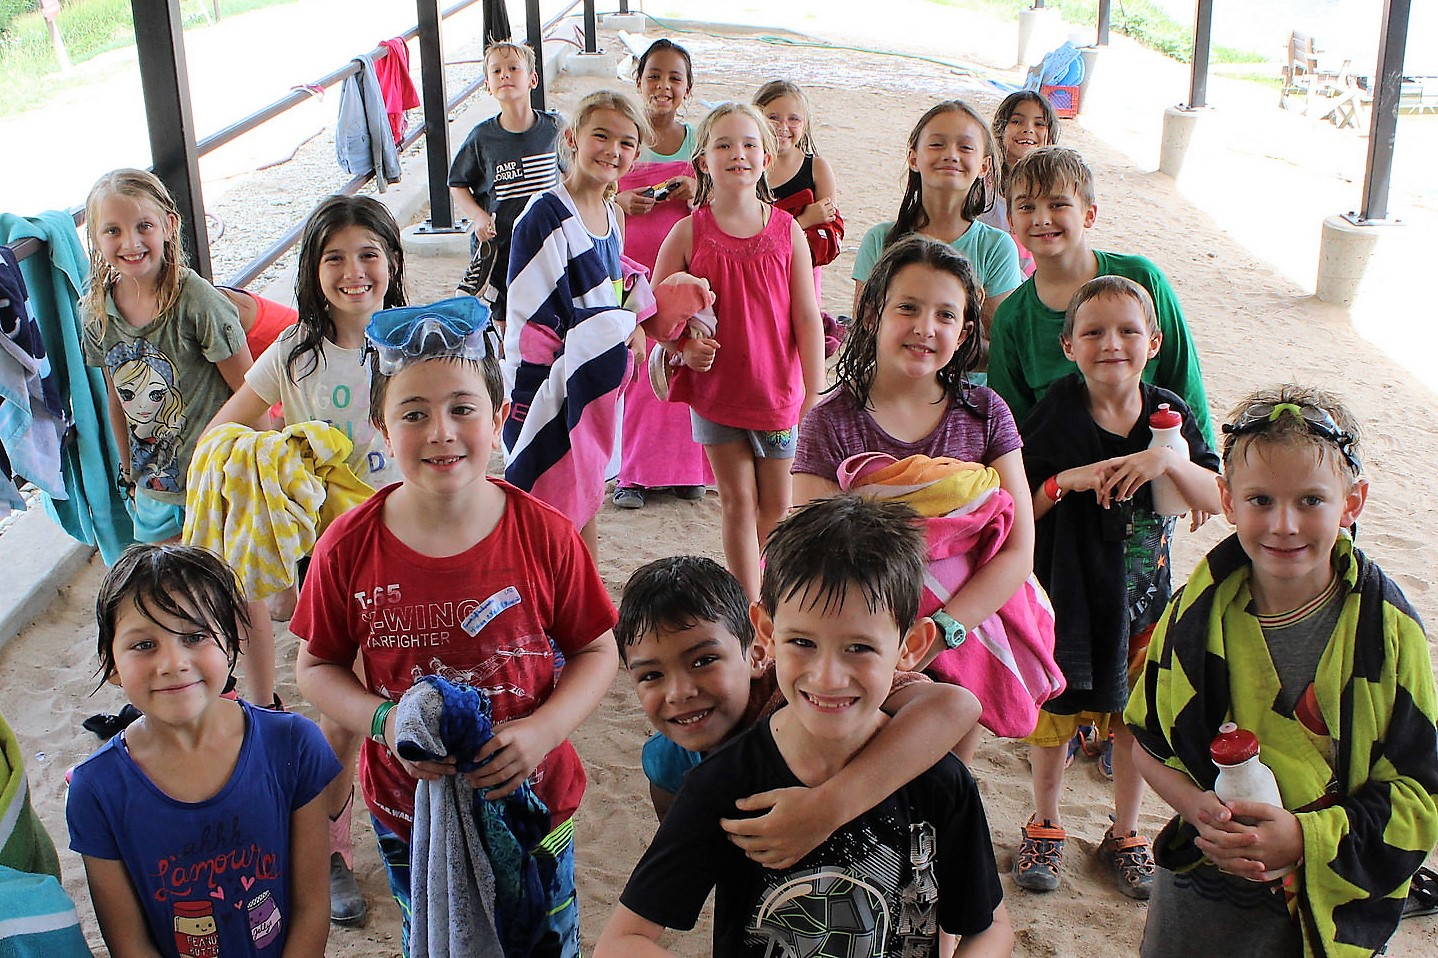 Specialty Camps - New for 2018